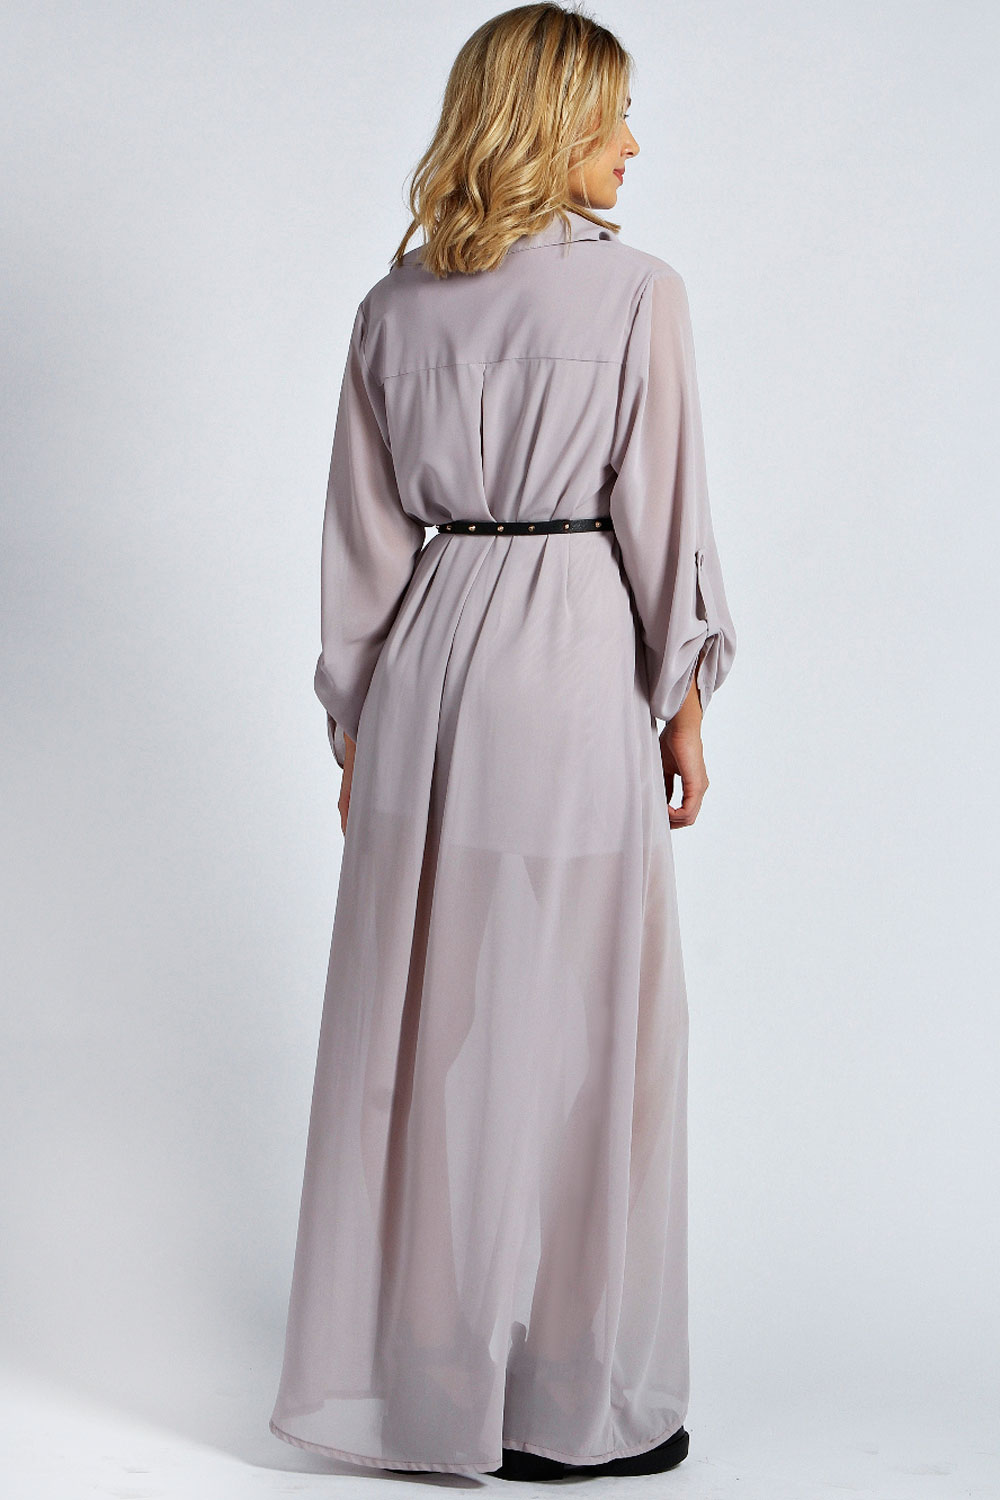 Maxi shirt dress uk